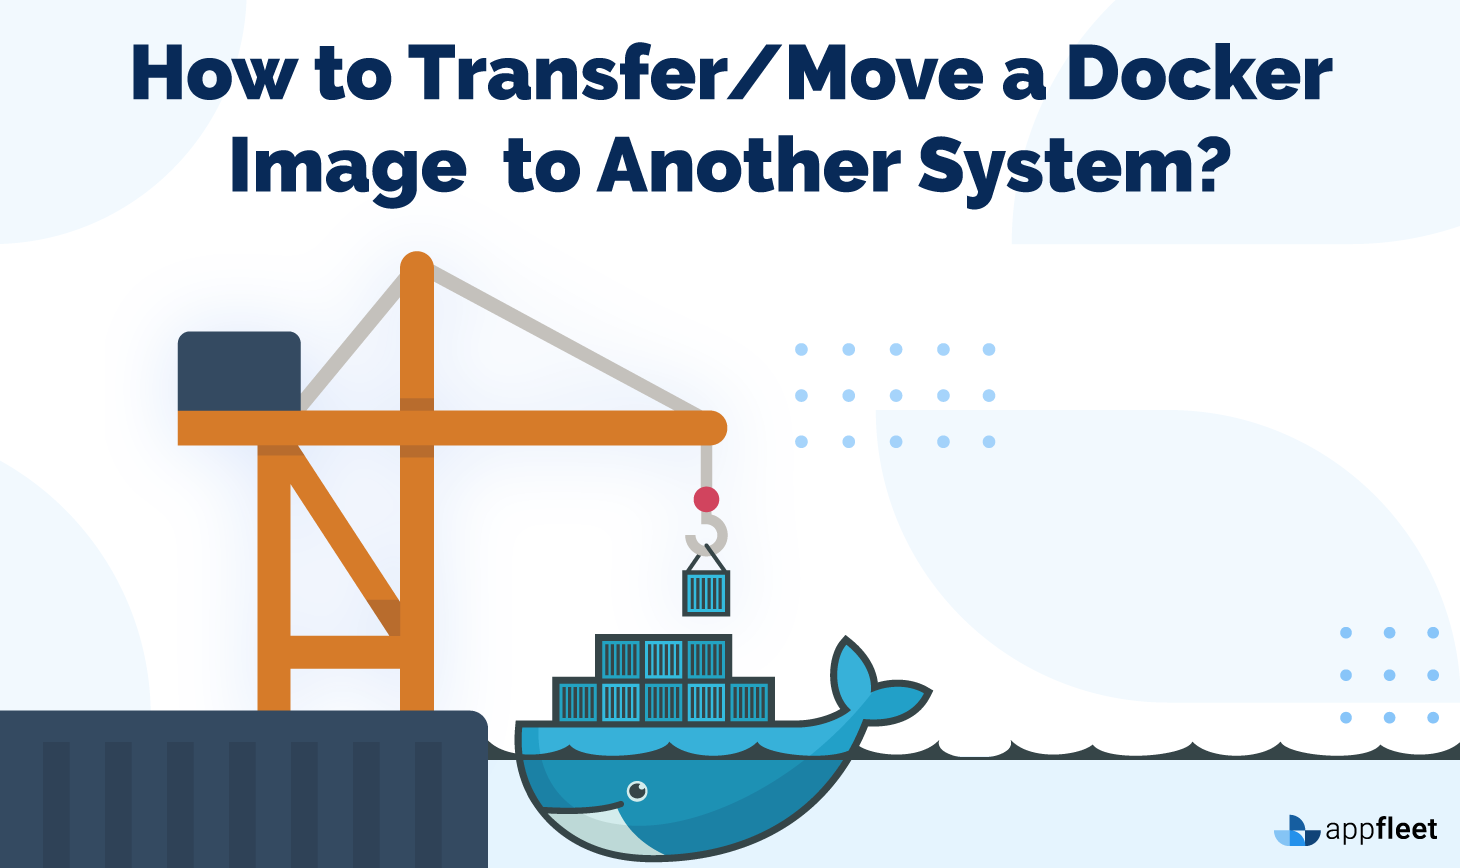 How to Transfer/Move a Docker Image to Another System?